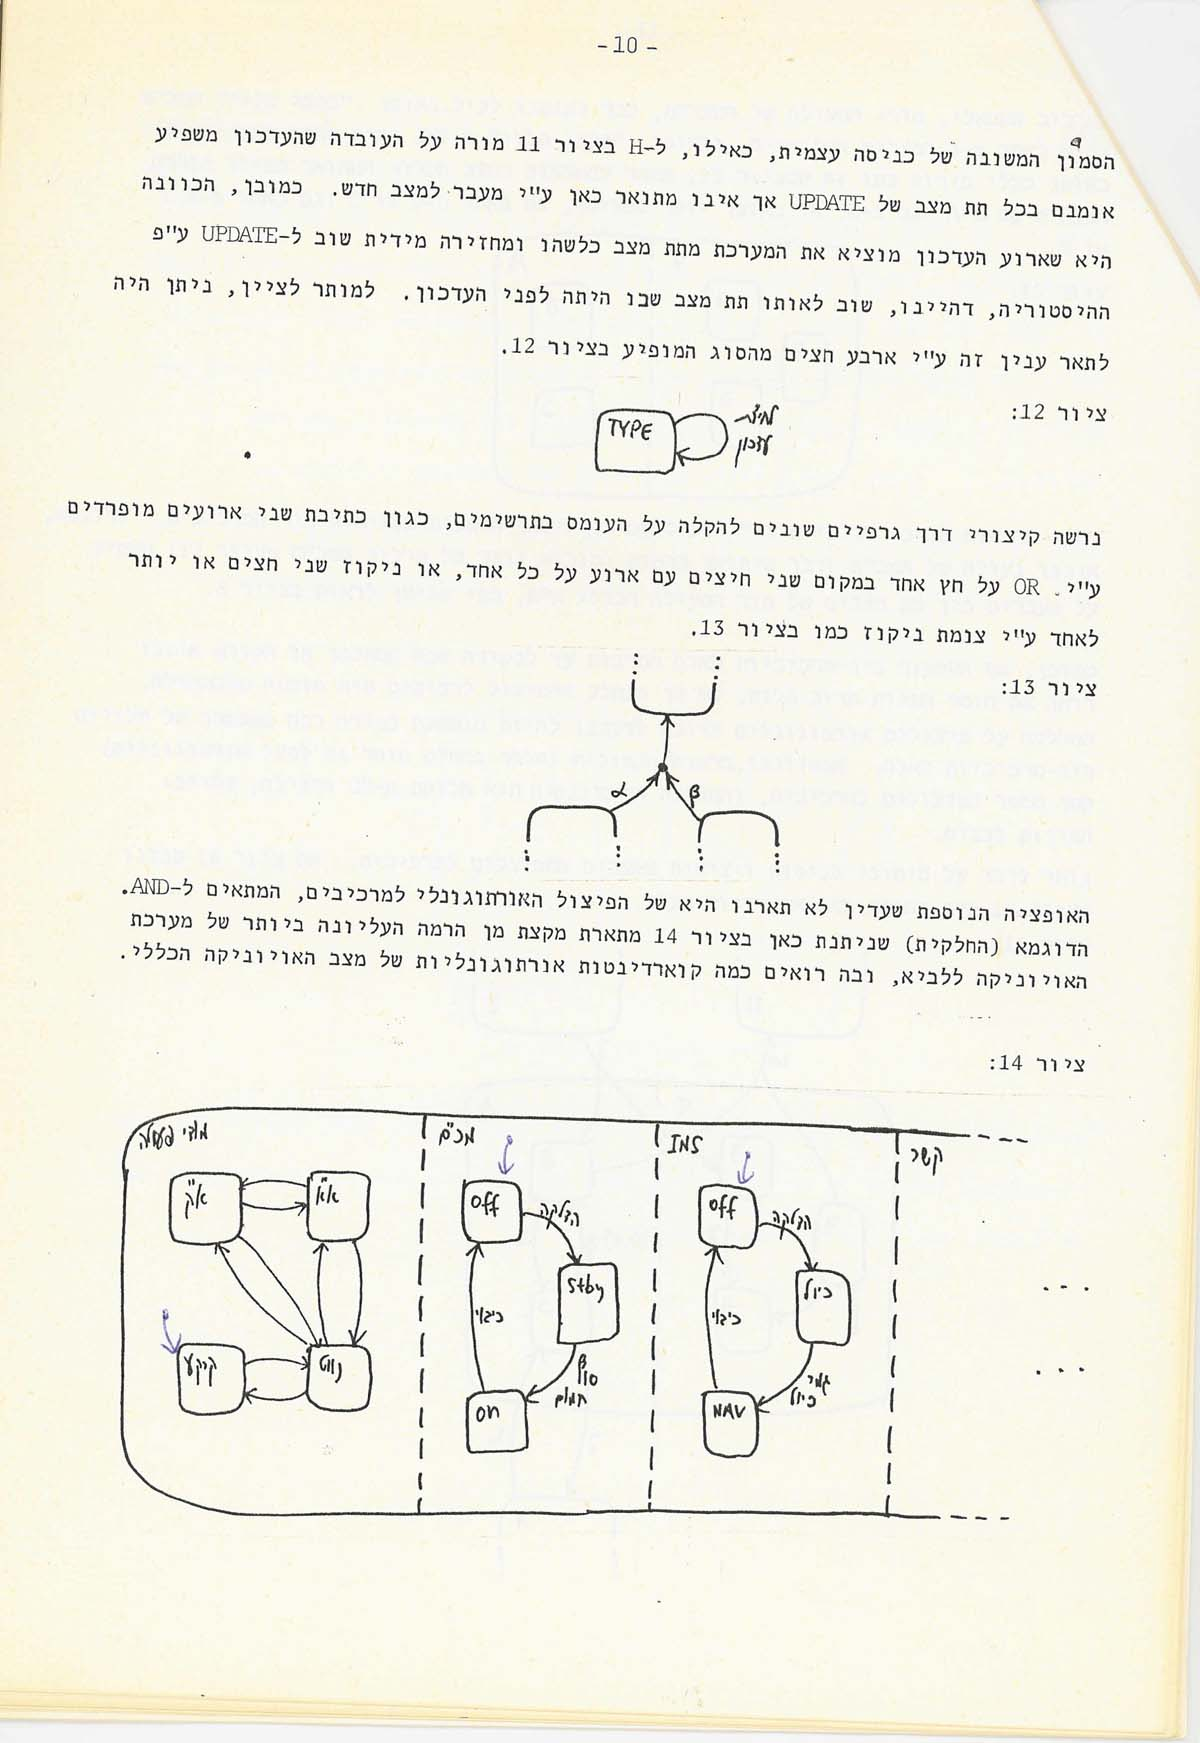 Figure 16. Page 10 of the internal IAI document (December 1983; in Hebrew).